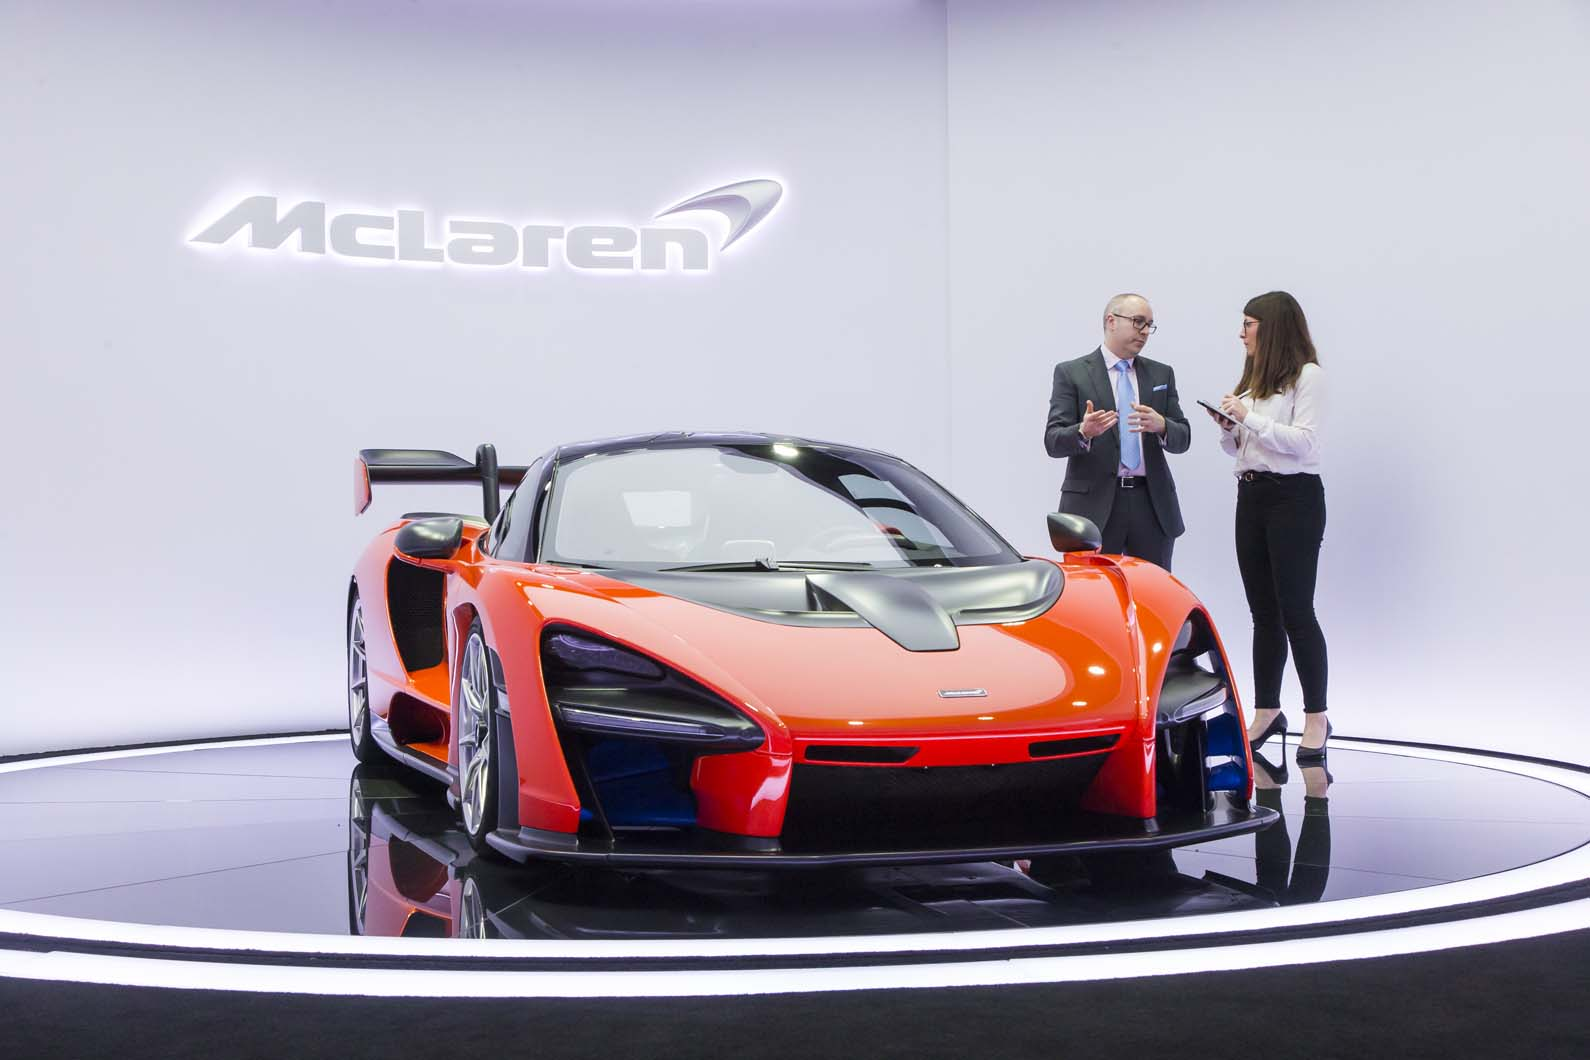 How to customise your McLaren Senna